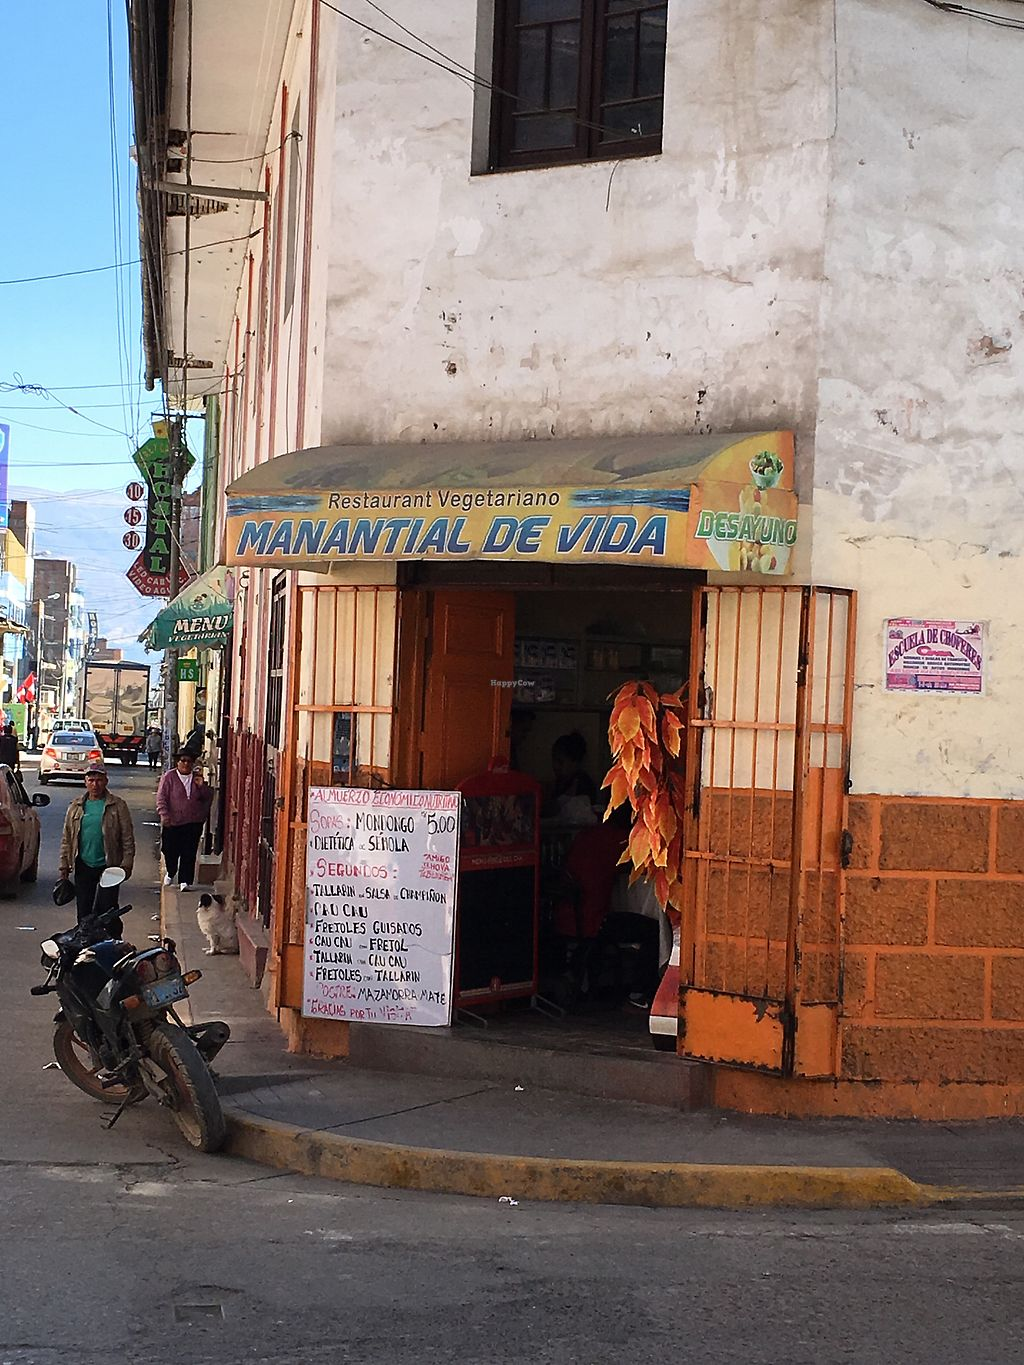 """Photo of Manantial de Vida  by <a href=""""/members/profile/lamoni"""">lamoni</a> <br/>Manantial de Vida <br/> August 20, 2017  - <a href='/contact/abuse/image/98994/294619'>Report</a>"""